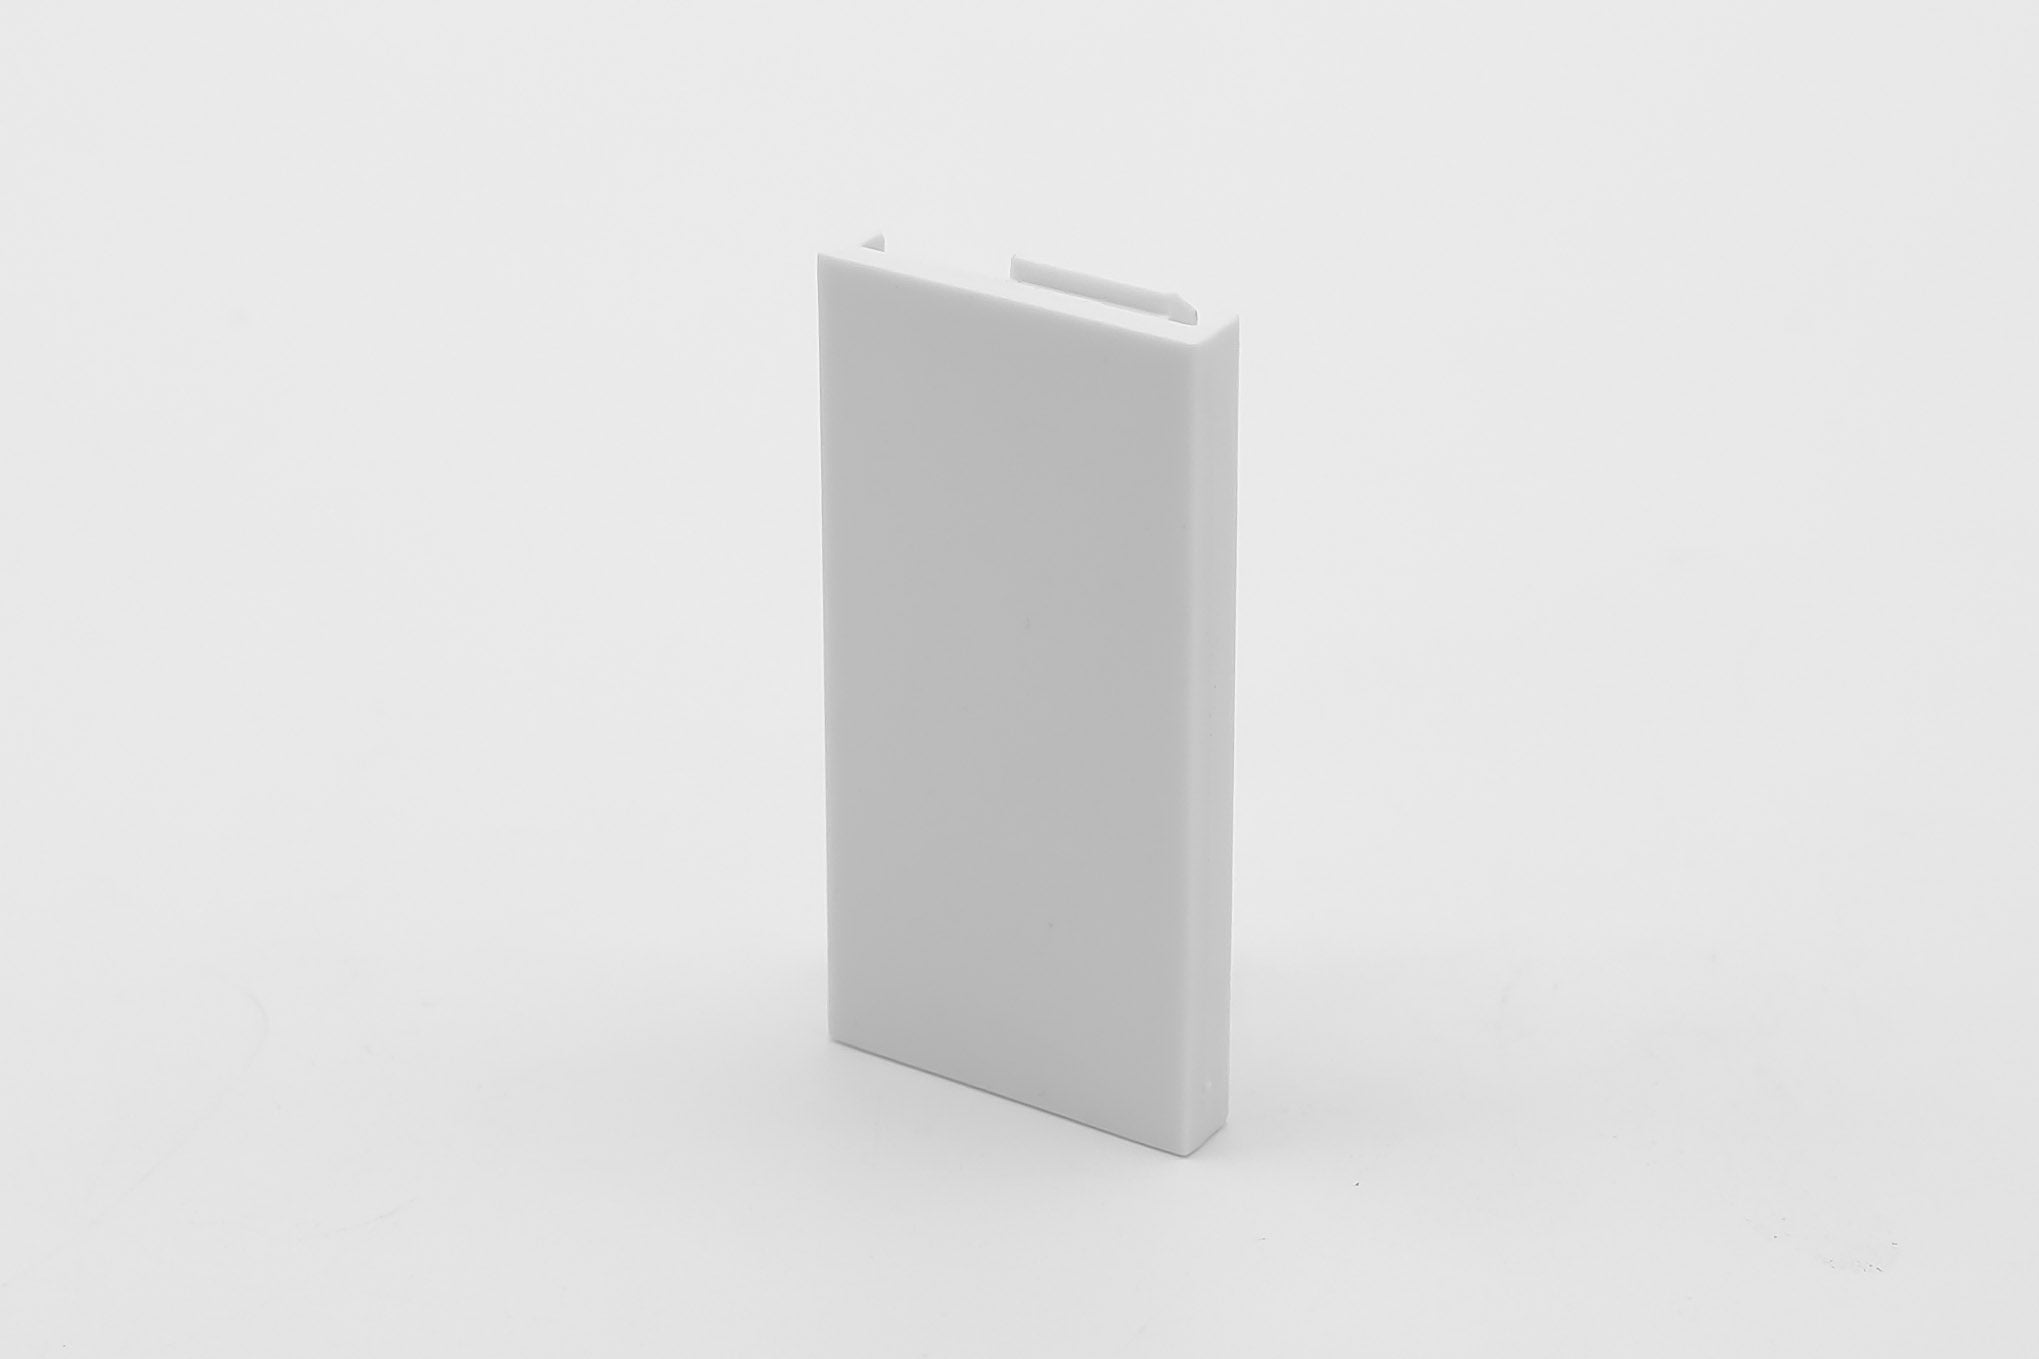 50mm x 25mm  Half Blank for Euro Module Faceplates - White